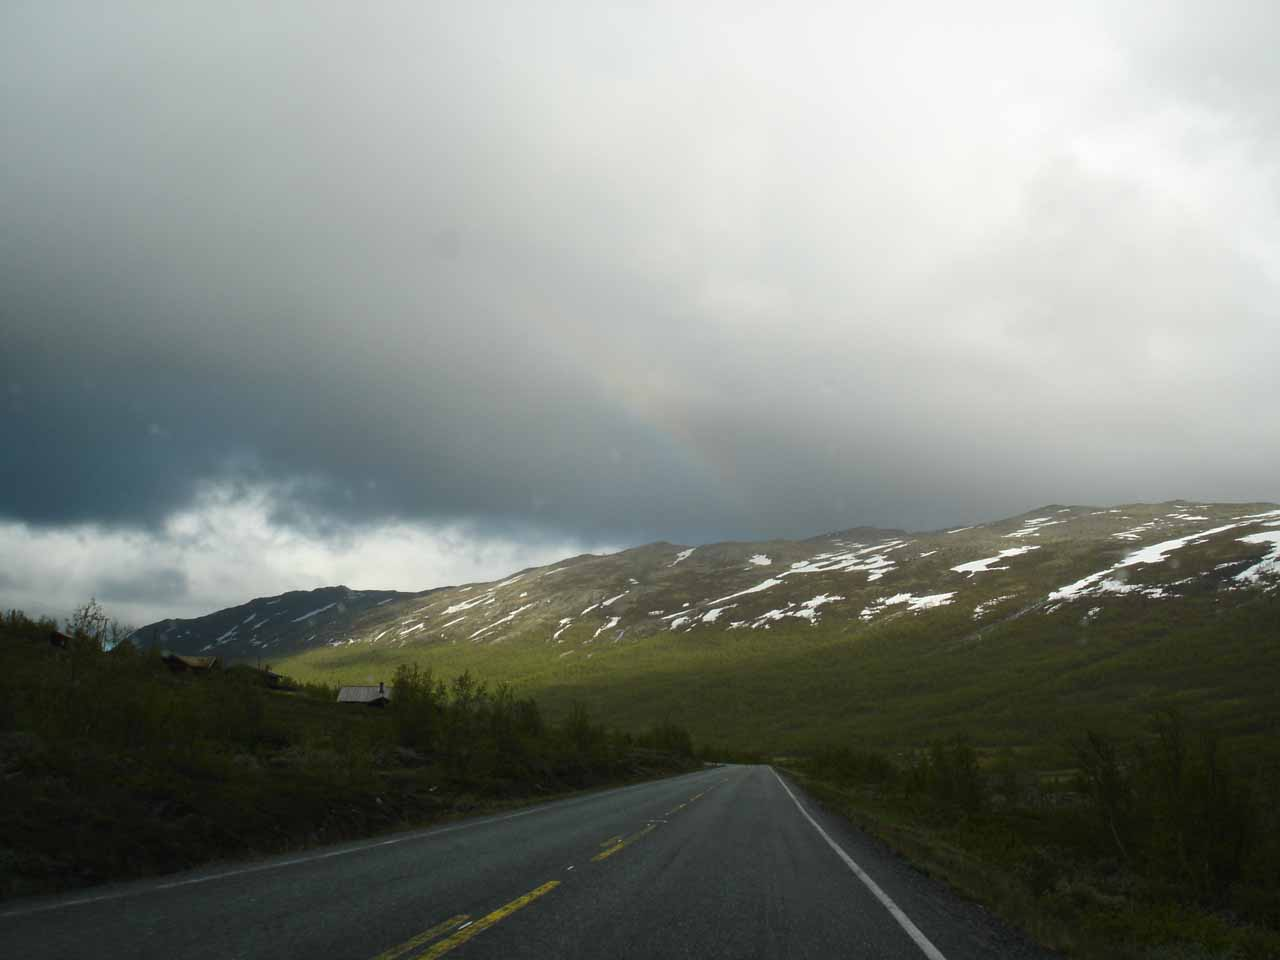 While on the Rv52, we noticed this faint rainbow up in the clouds